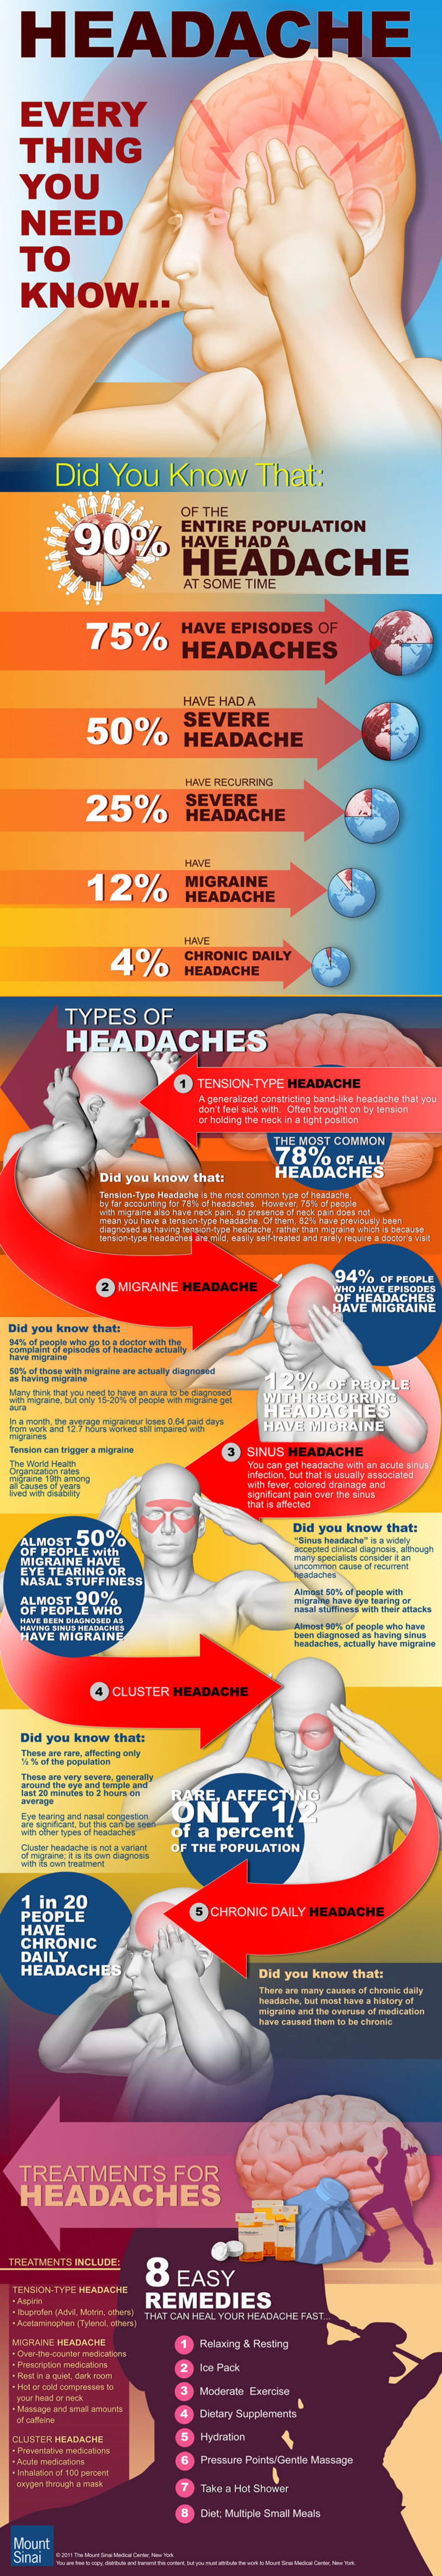 All you need to know about headaches infographic